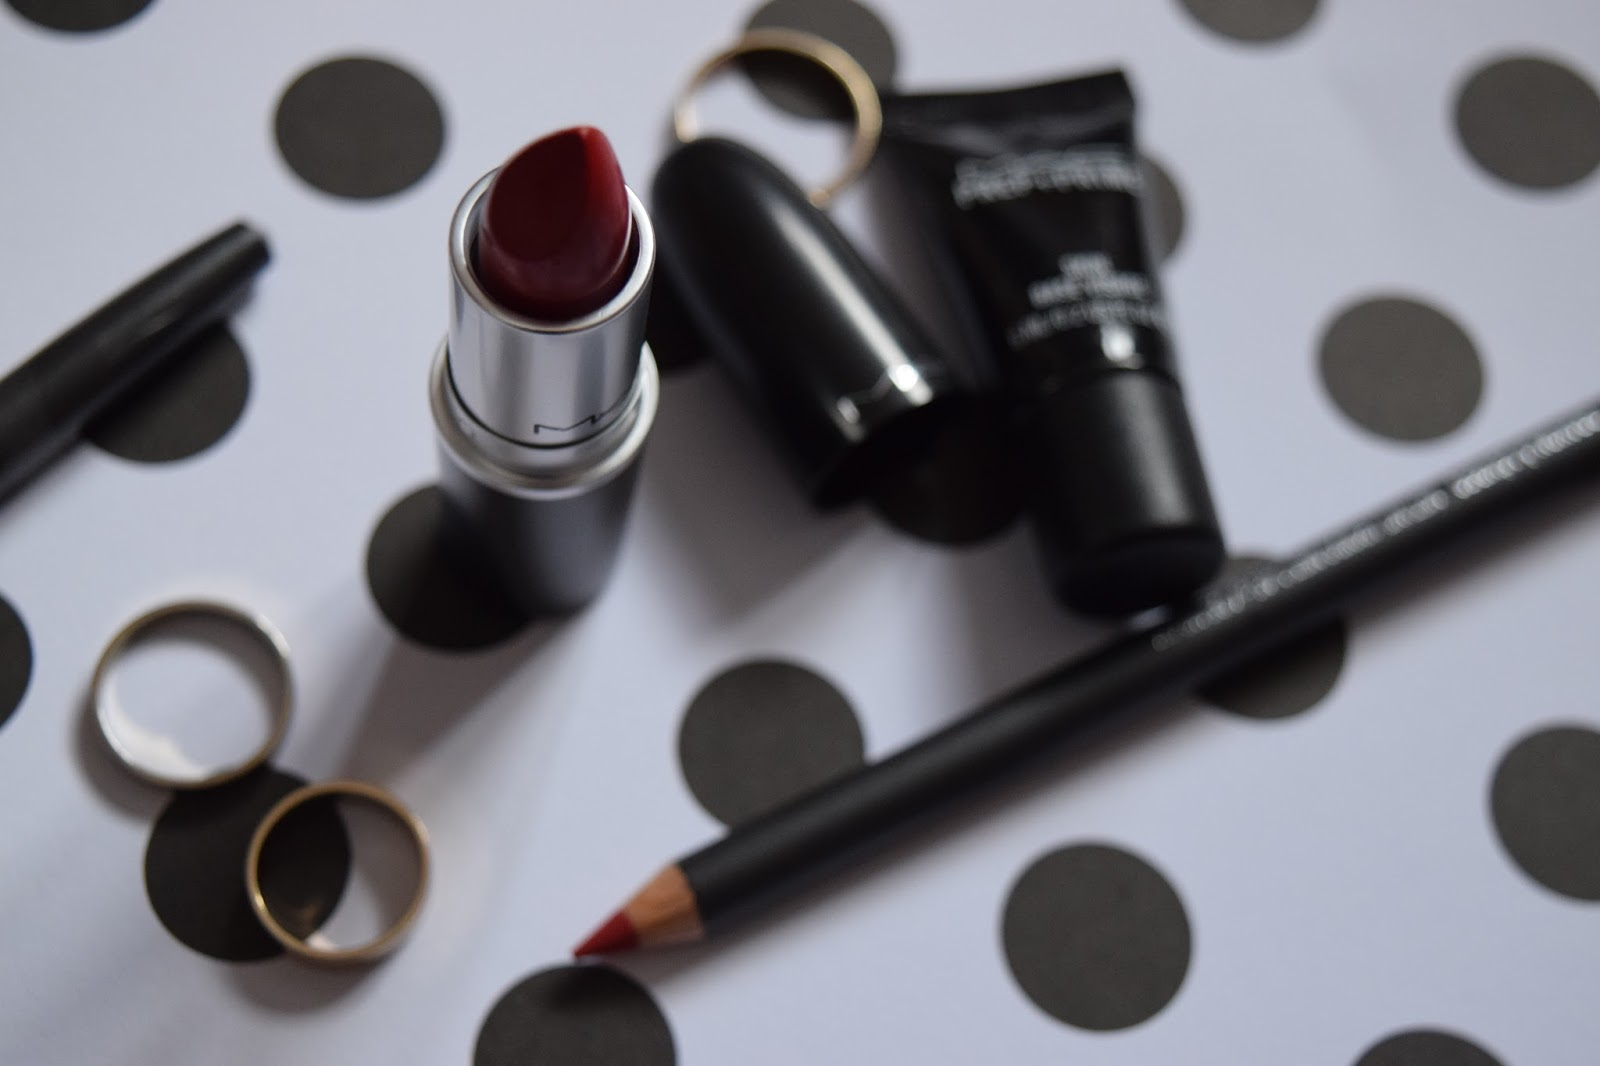 MAC Russian Red and Cherry